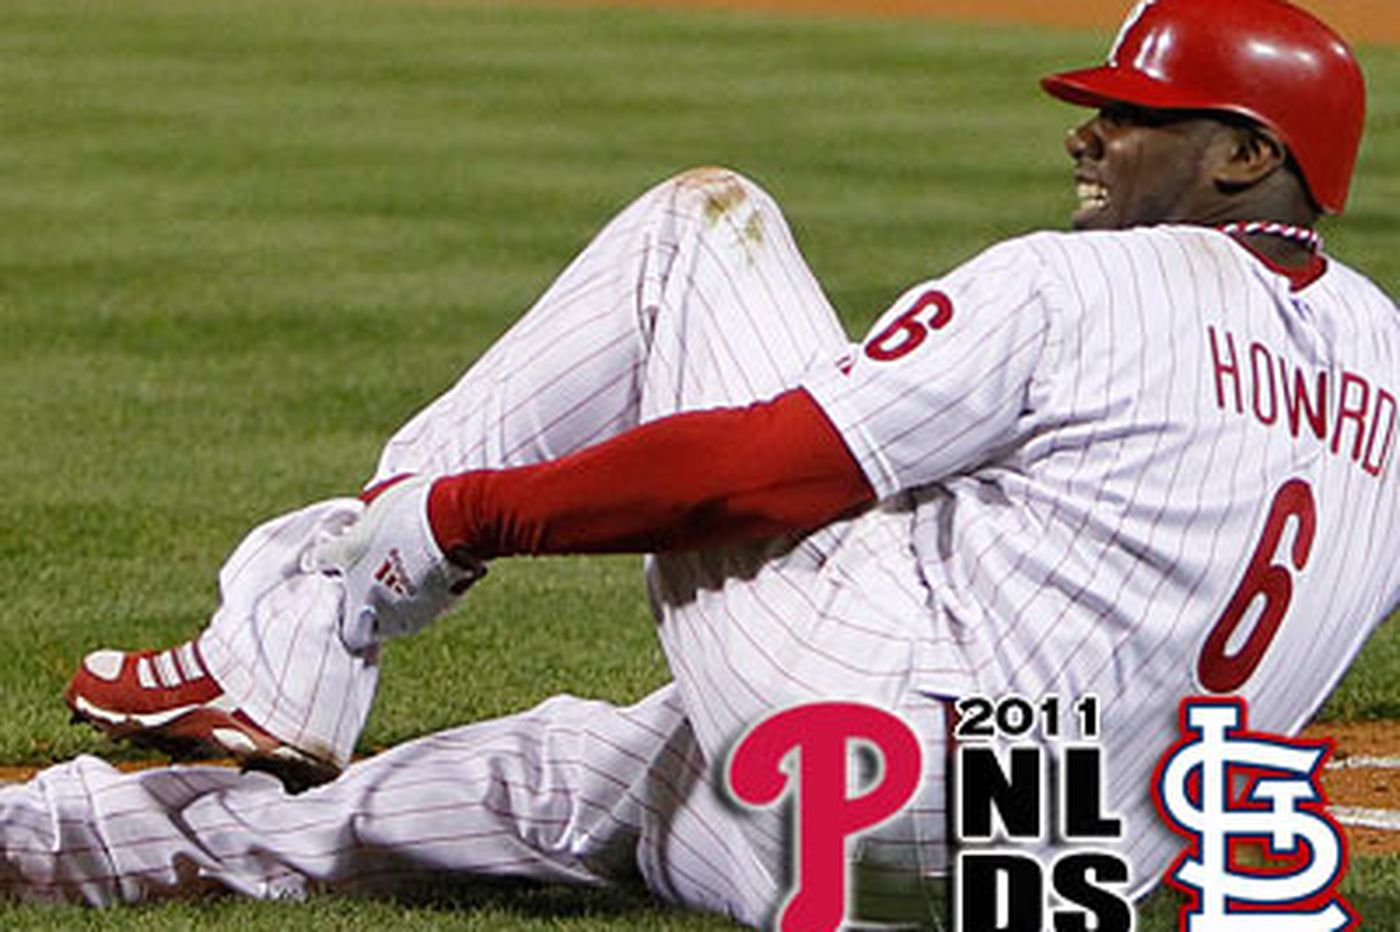 Howard's injury adds another question to Phillies early offseason